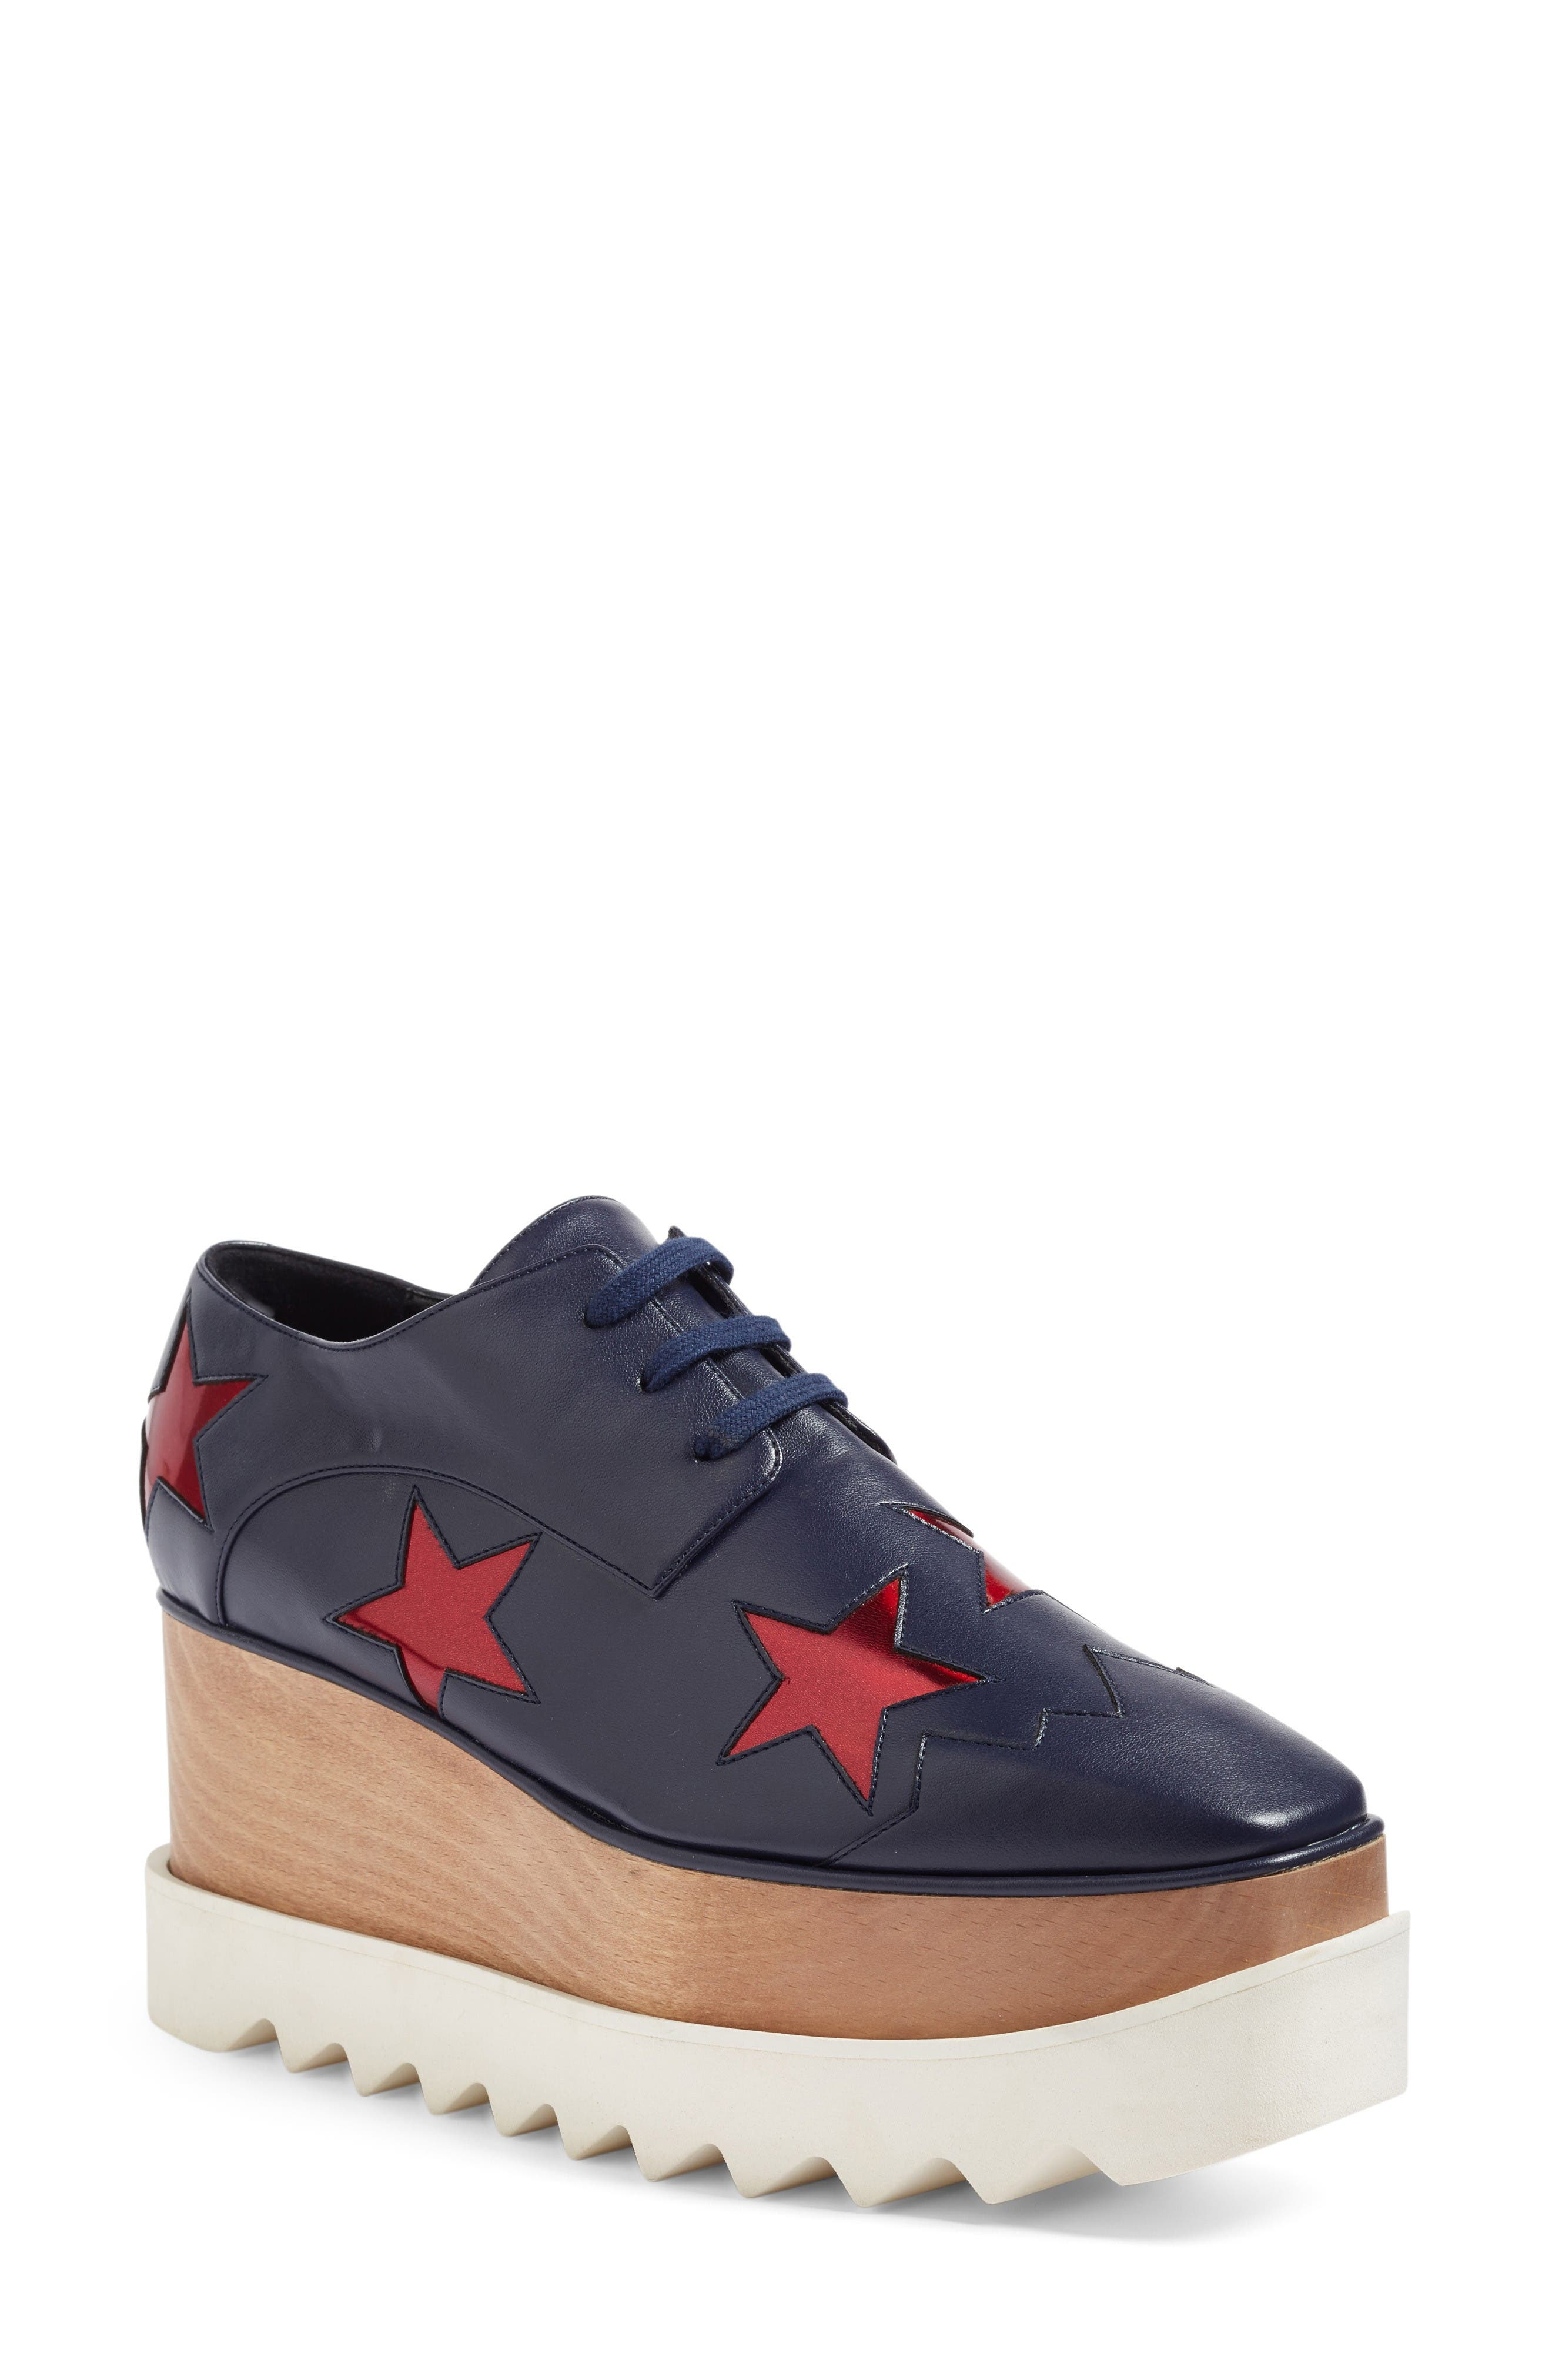 Alternate Image 1 Selected - Stella McCartney Platform Oxford (Women)